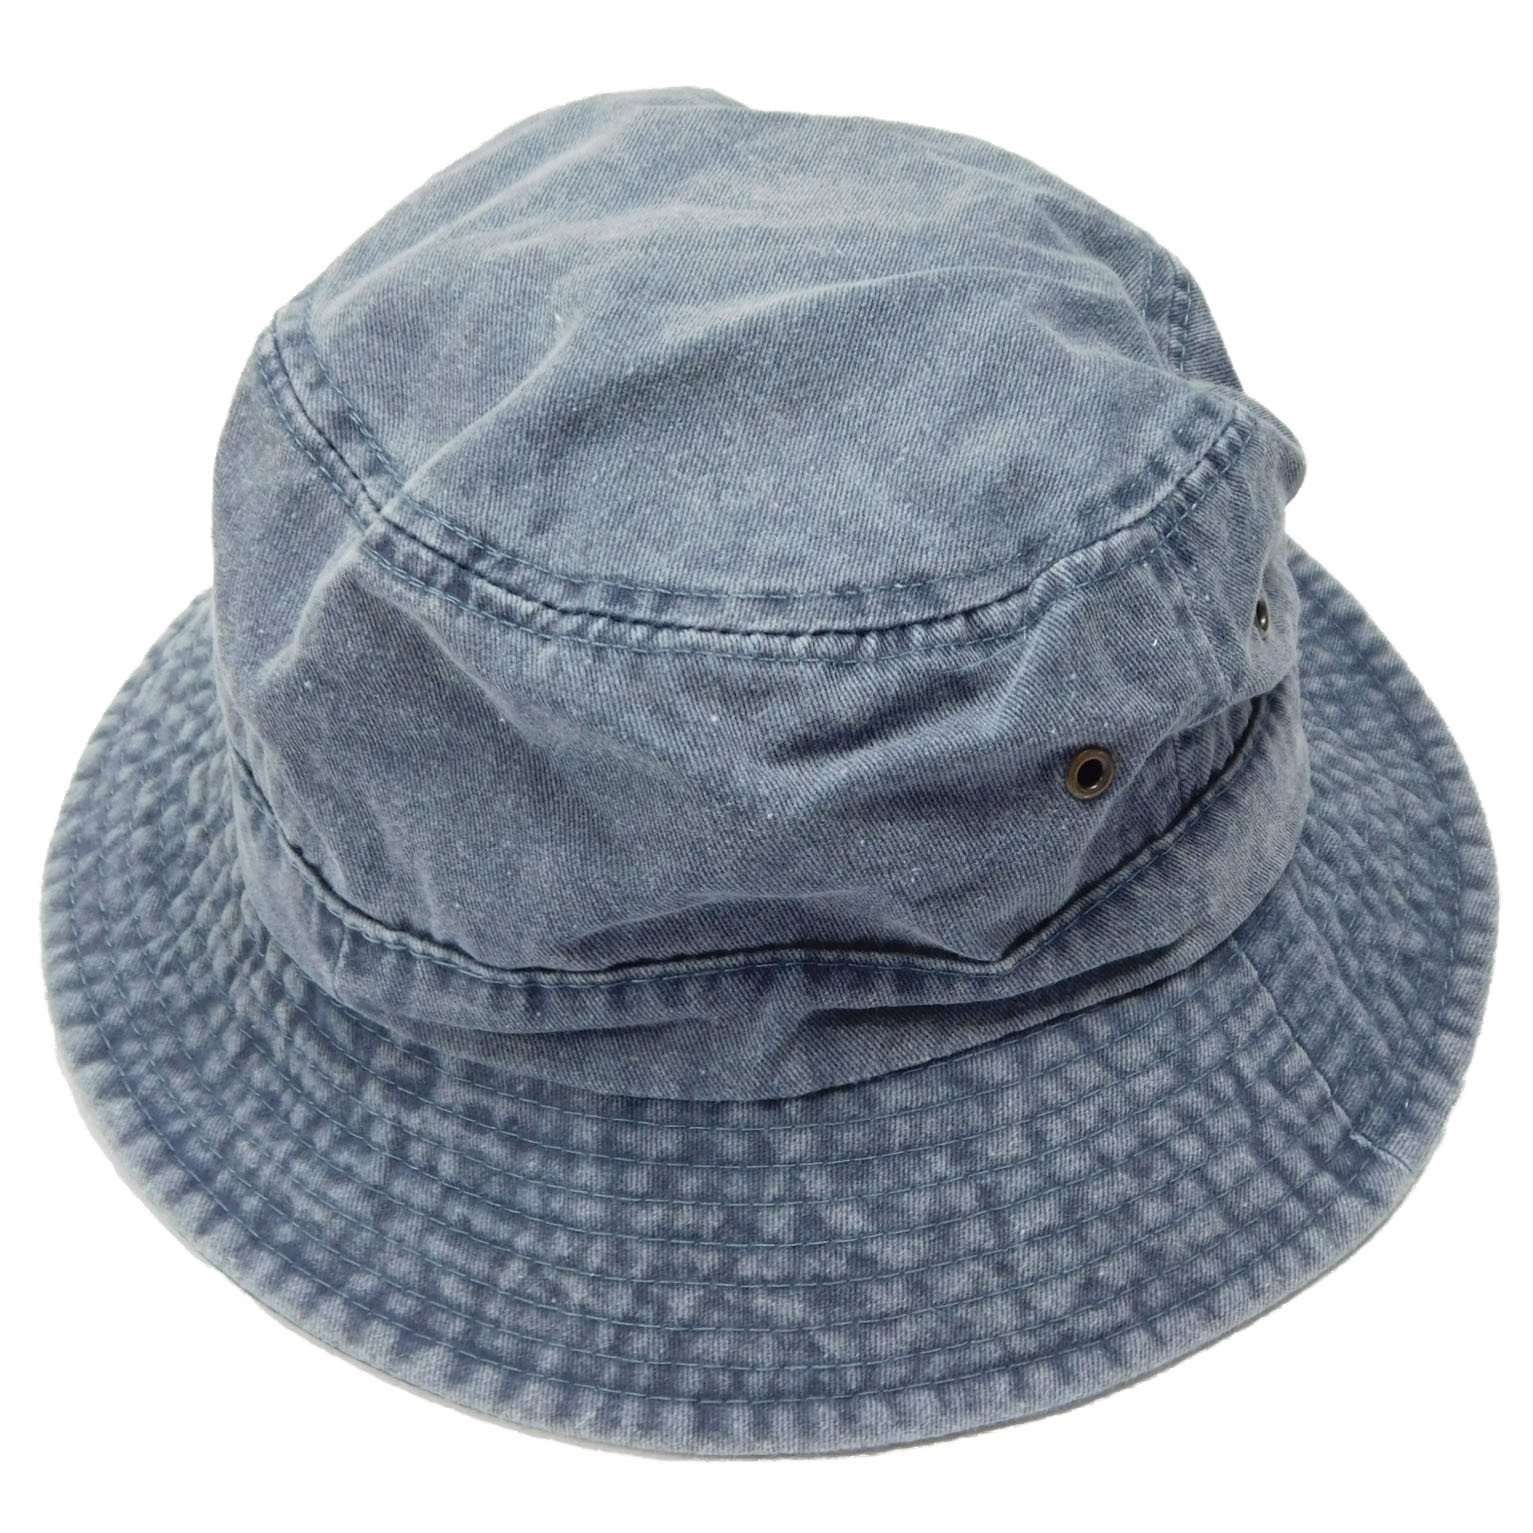 Bucket Hats and Boonies - Shop Men s and Women s Bucket Hats 44c21b2624e0